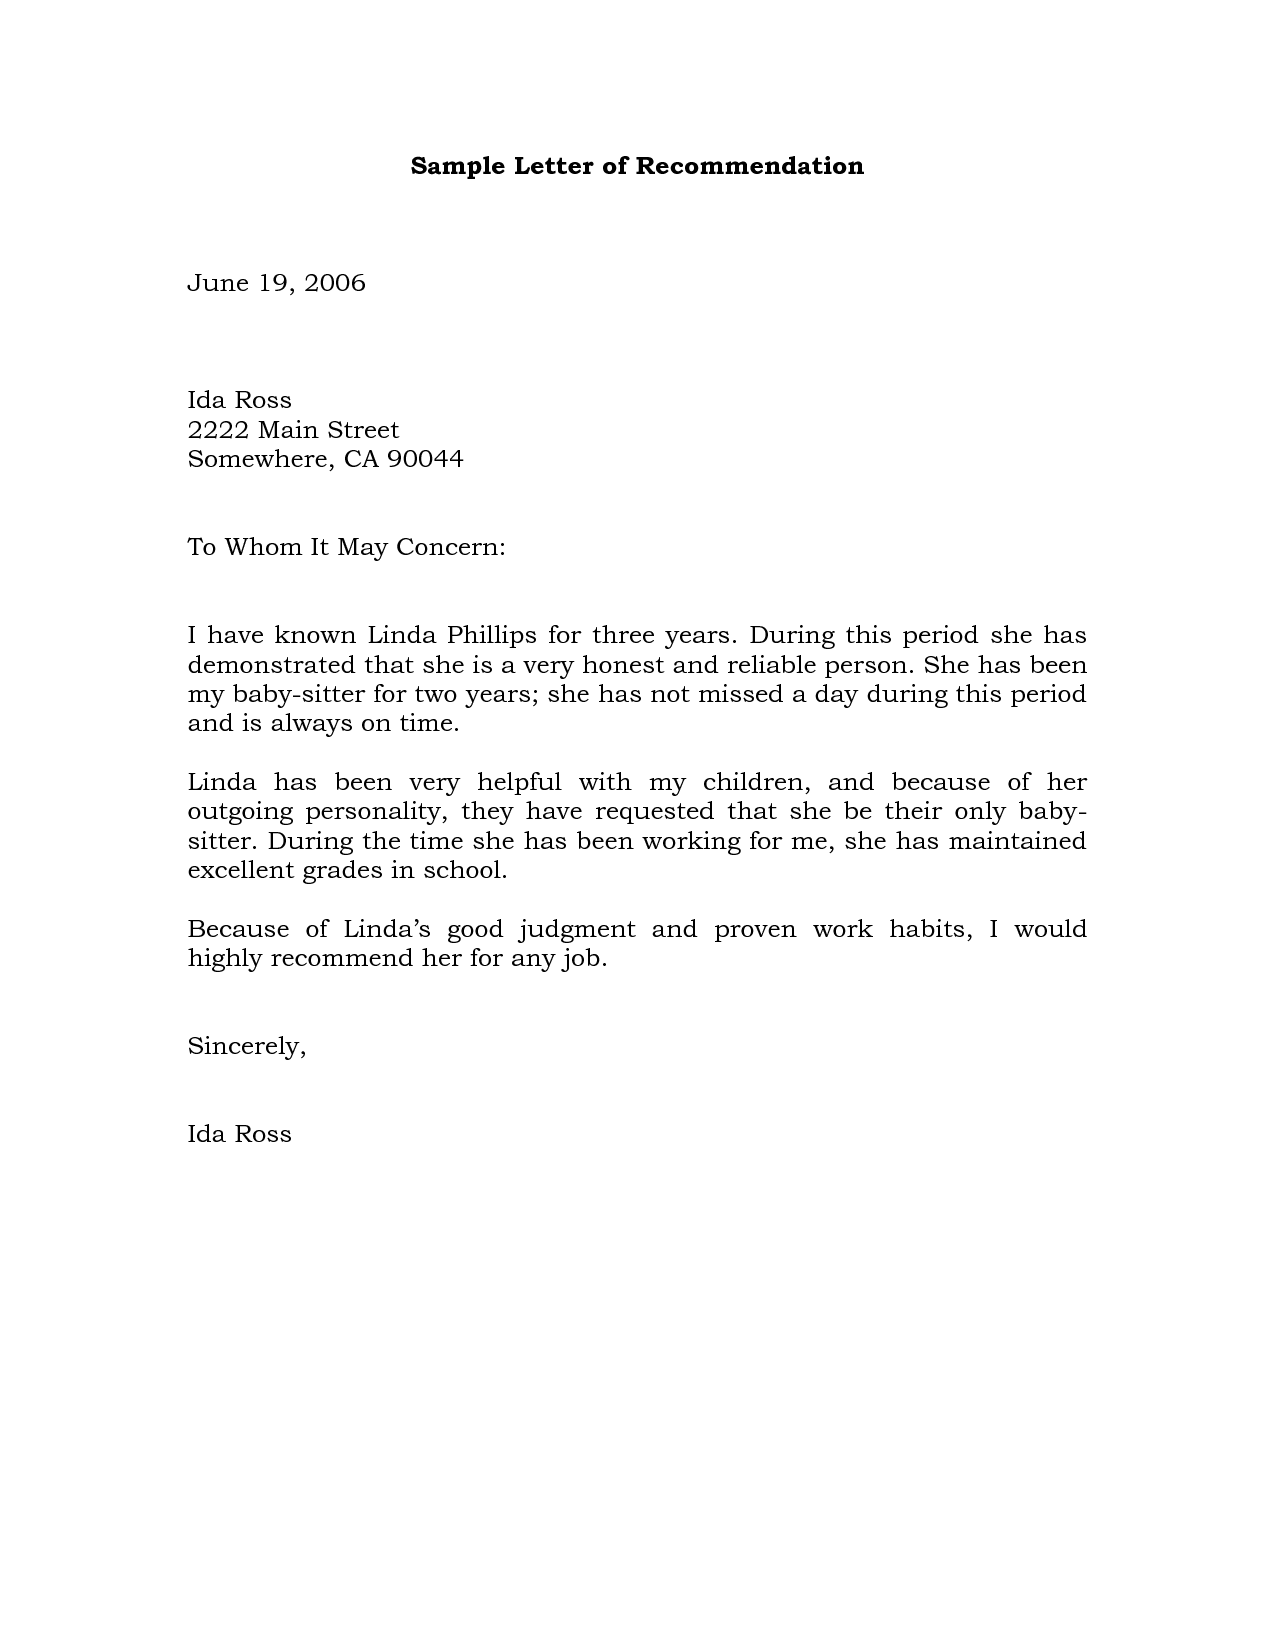 Sample Recommendation Letter Example  Professional References Letter Template